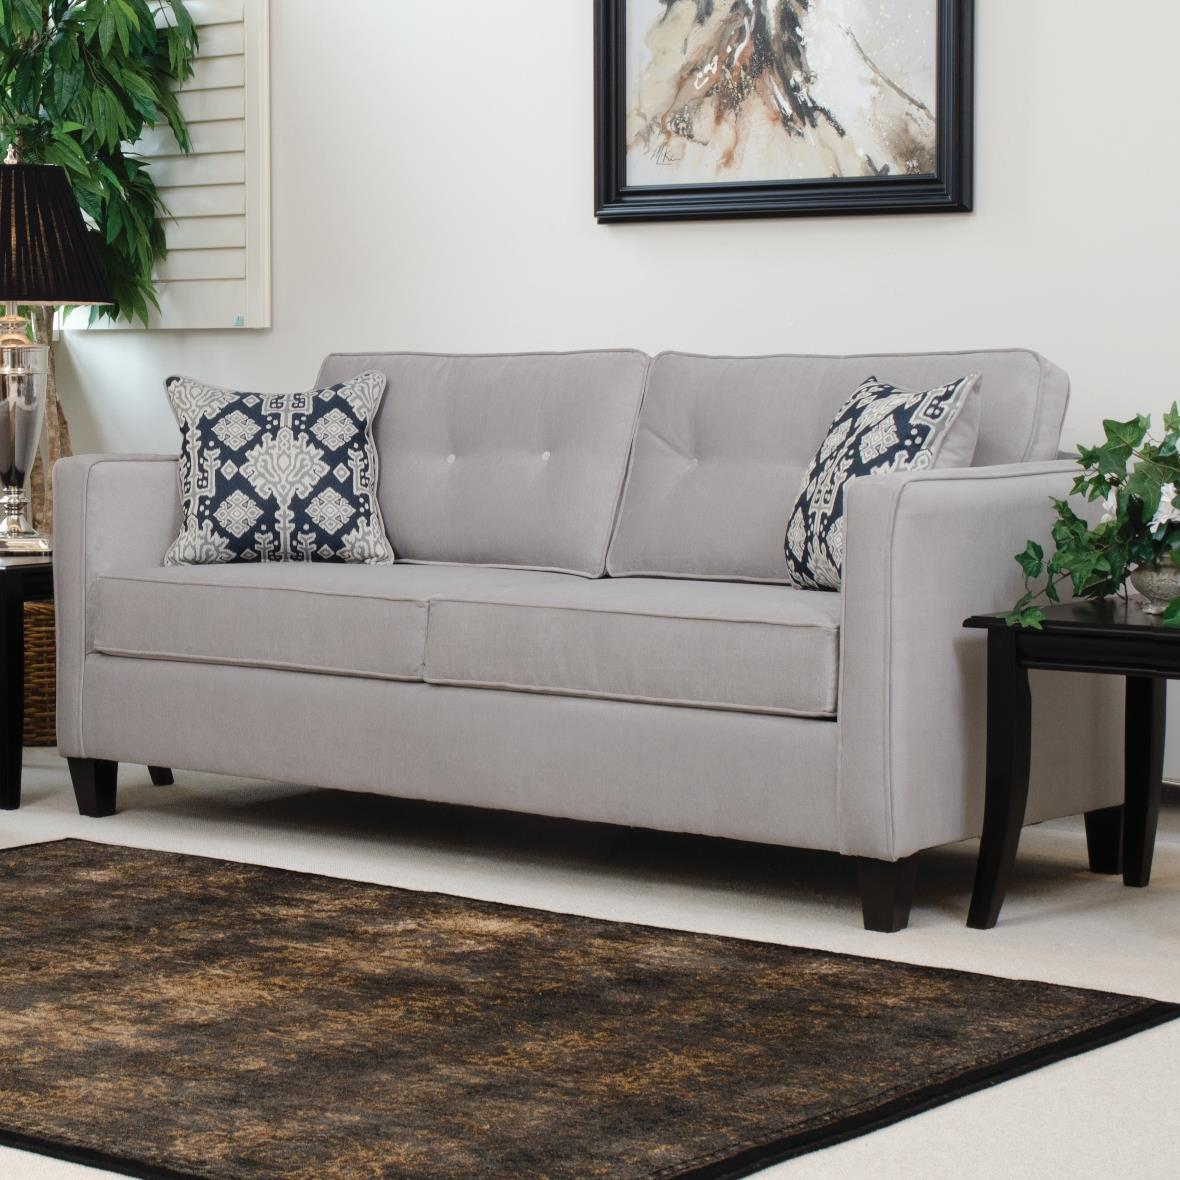 Serta Upholstery By Hughes Furniture 1375 Sofa With Casual Contemporary Style Vandrie Home